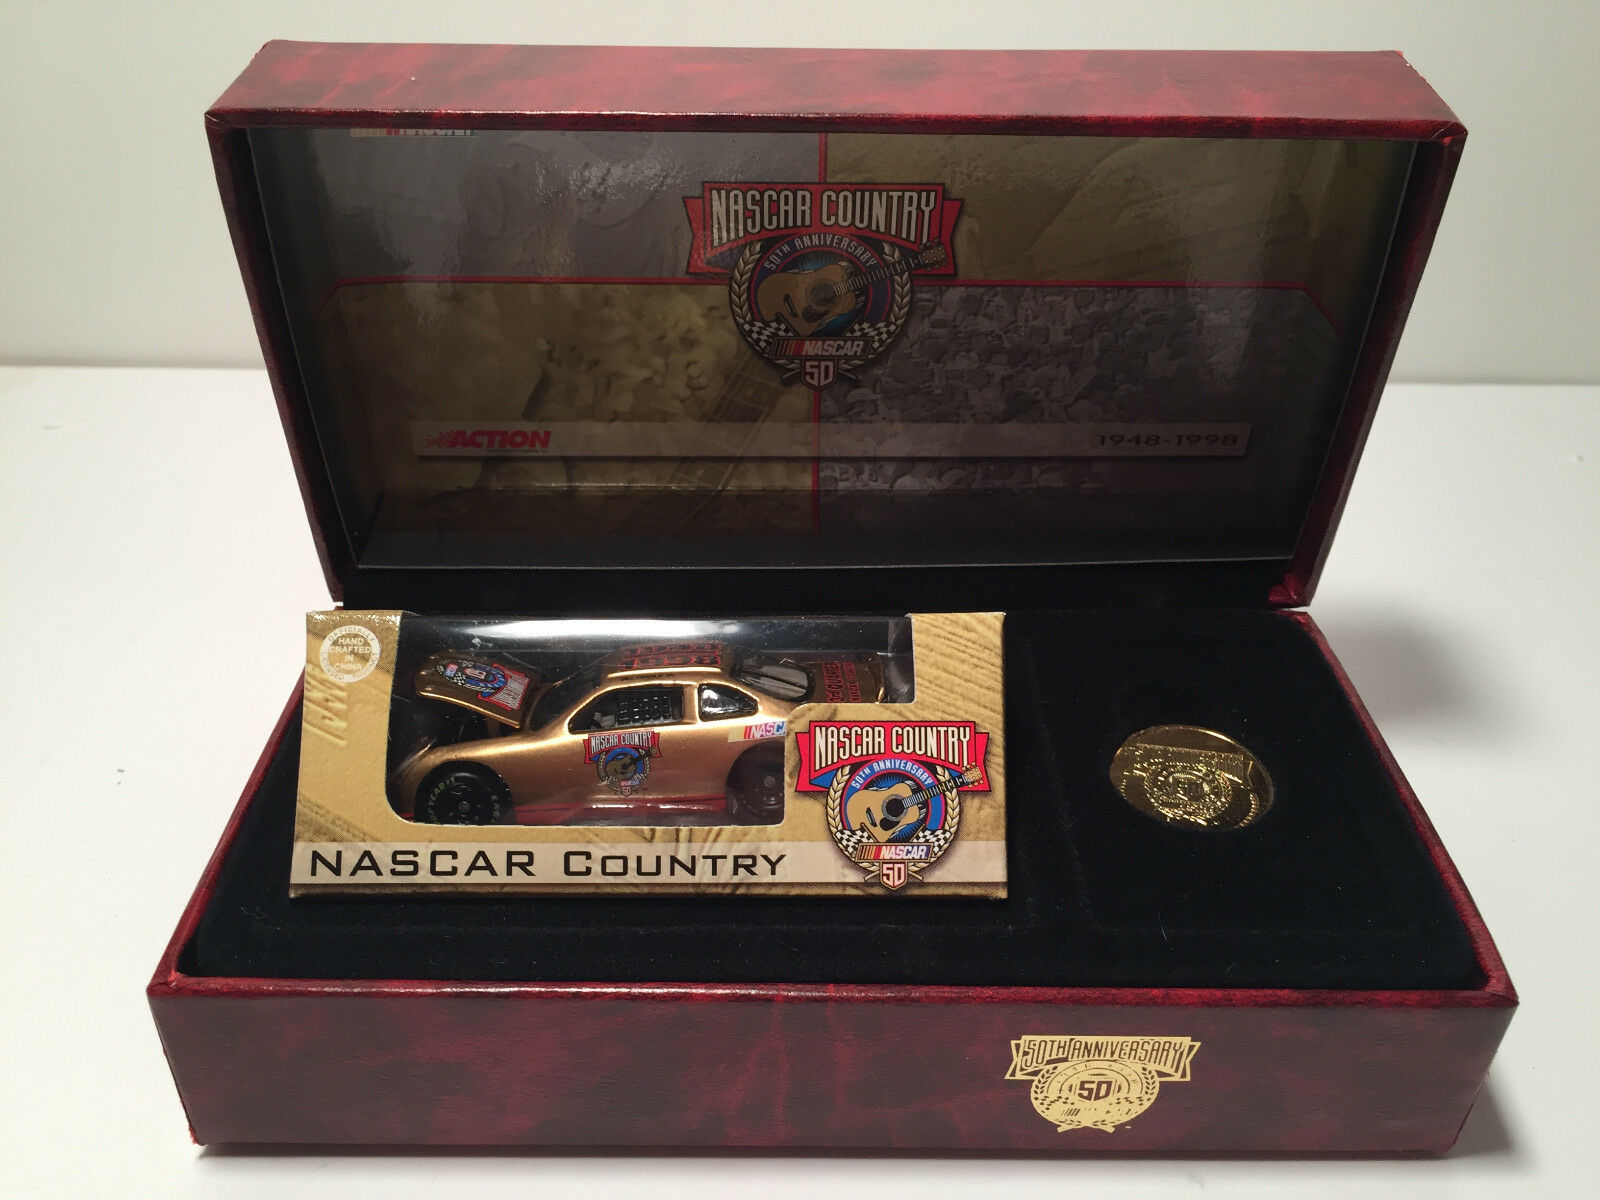 Nascar Country 50th anniversary Bill France Diecast Car and coin in box